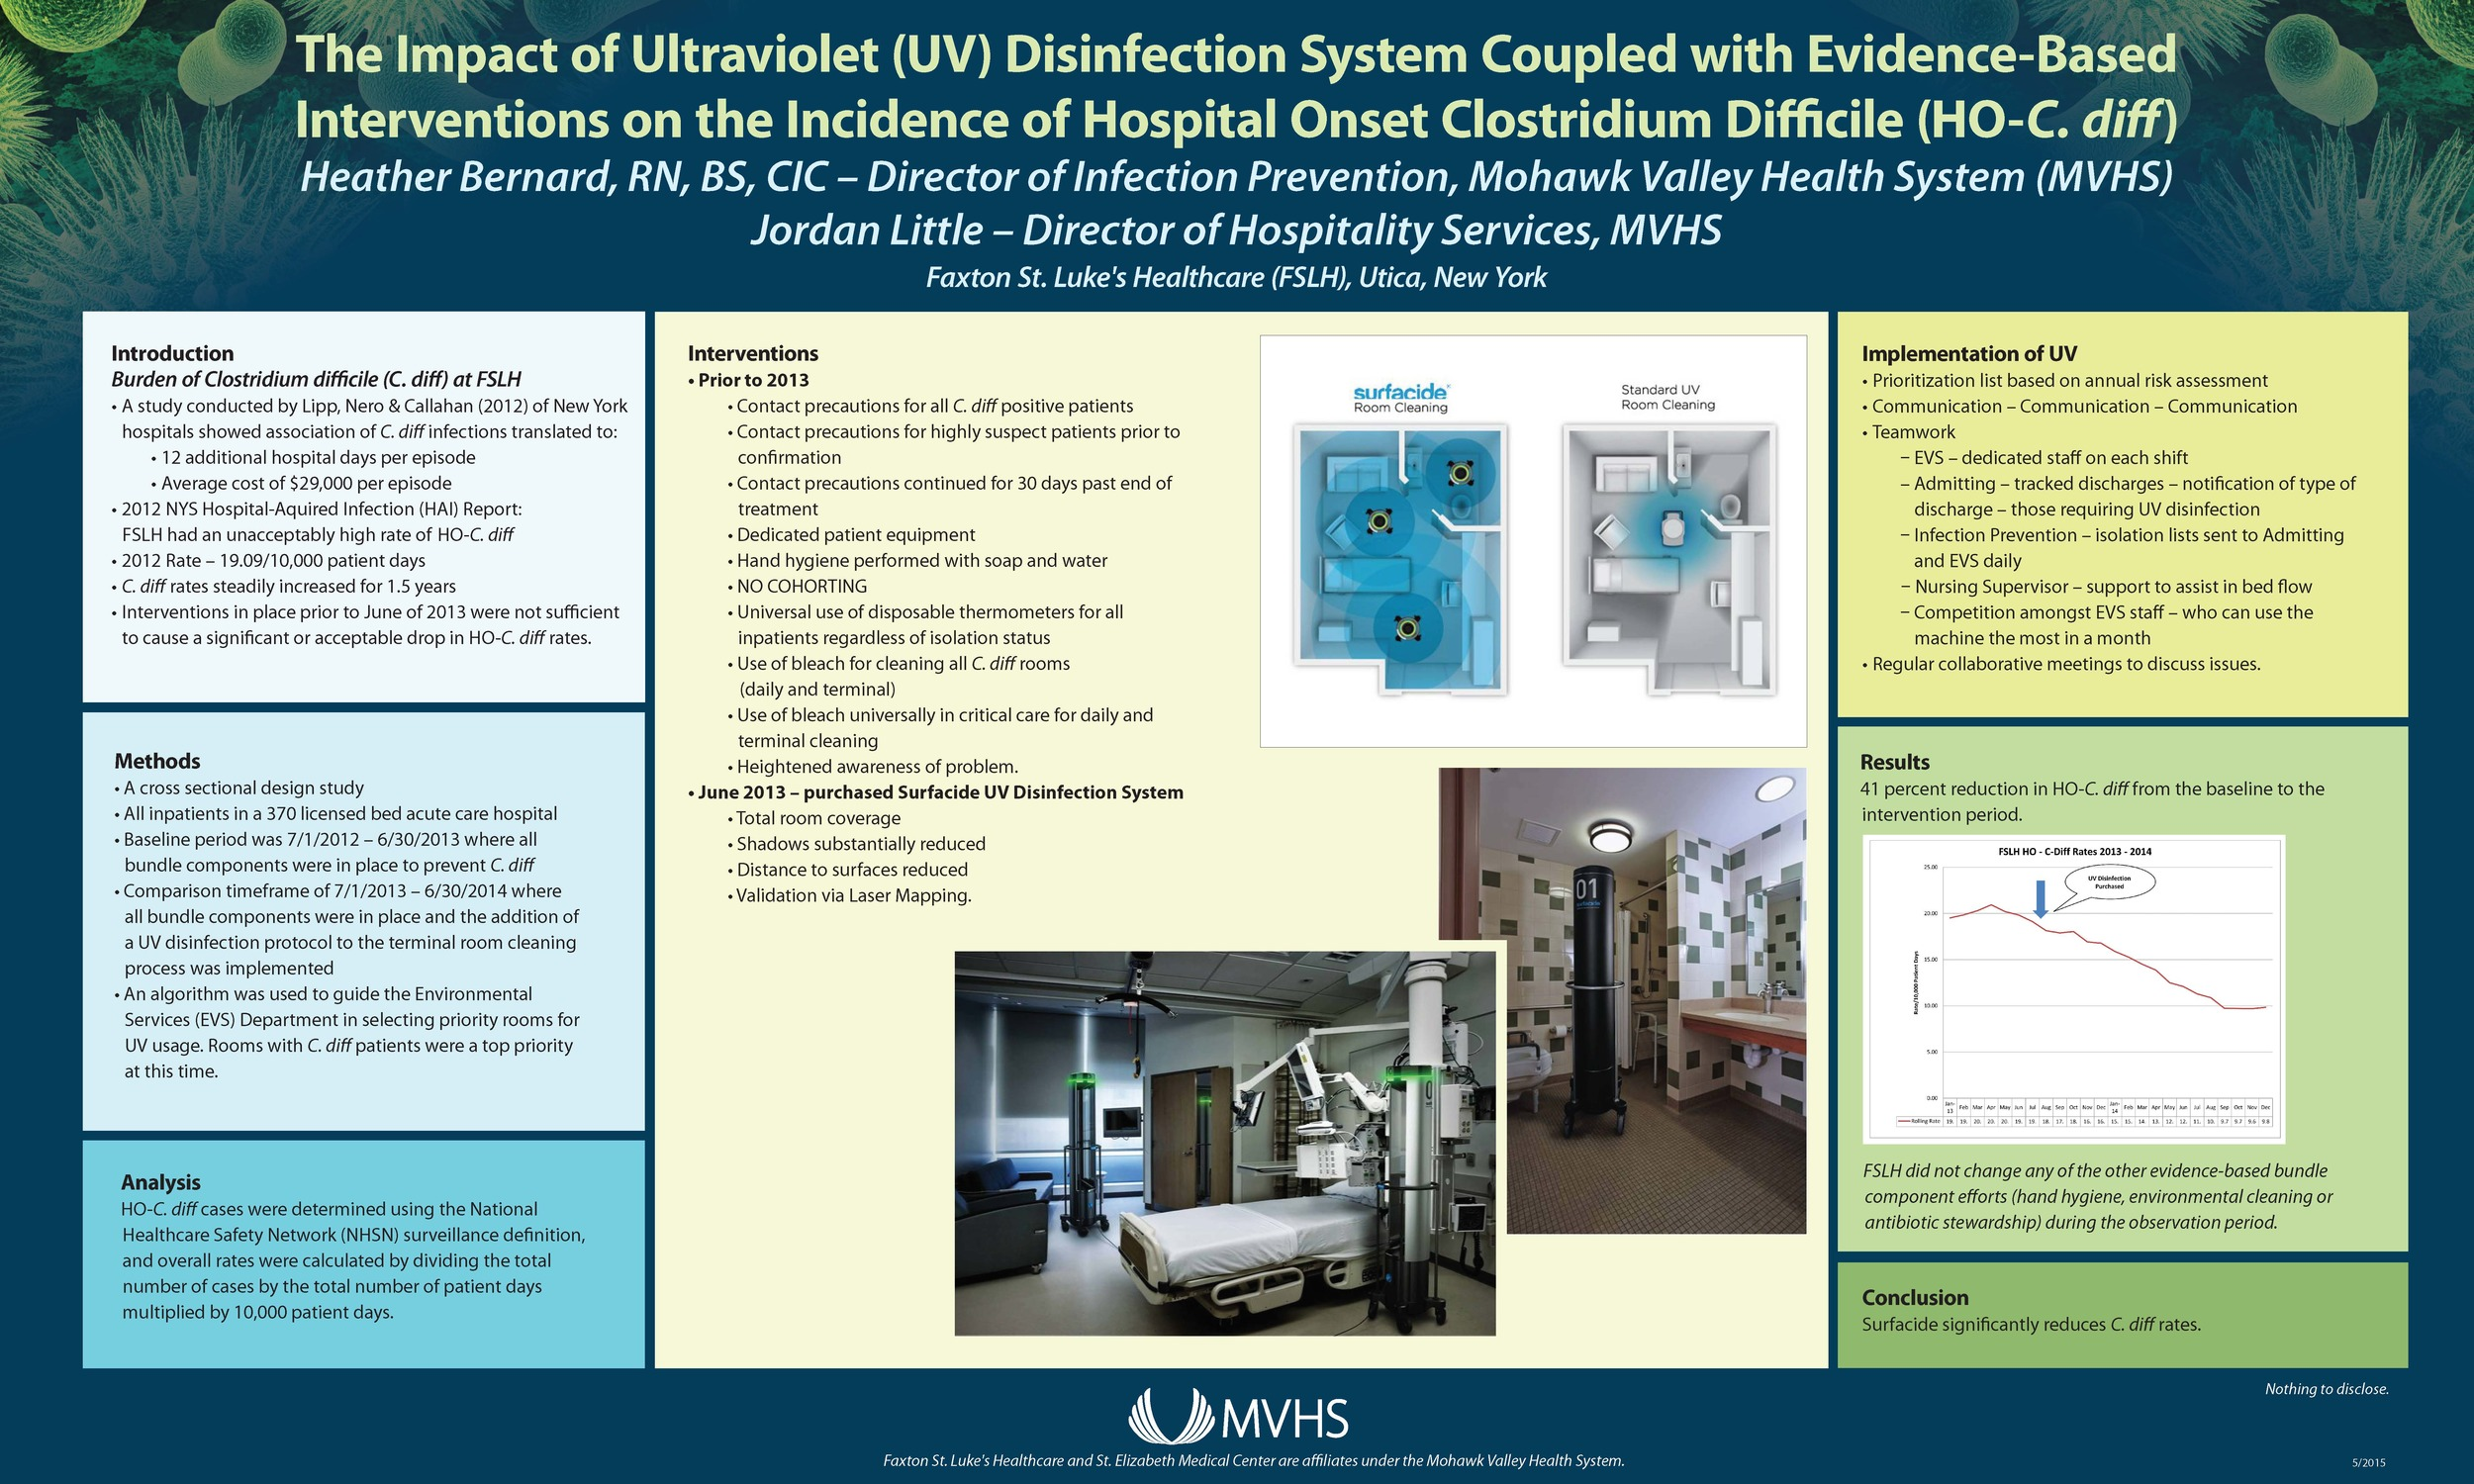 The impact of ultraviolet disinfection system coupled with evidence-based interventions on the incidence of hospital onset Clostridium Difficile.